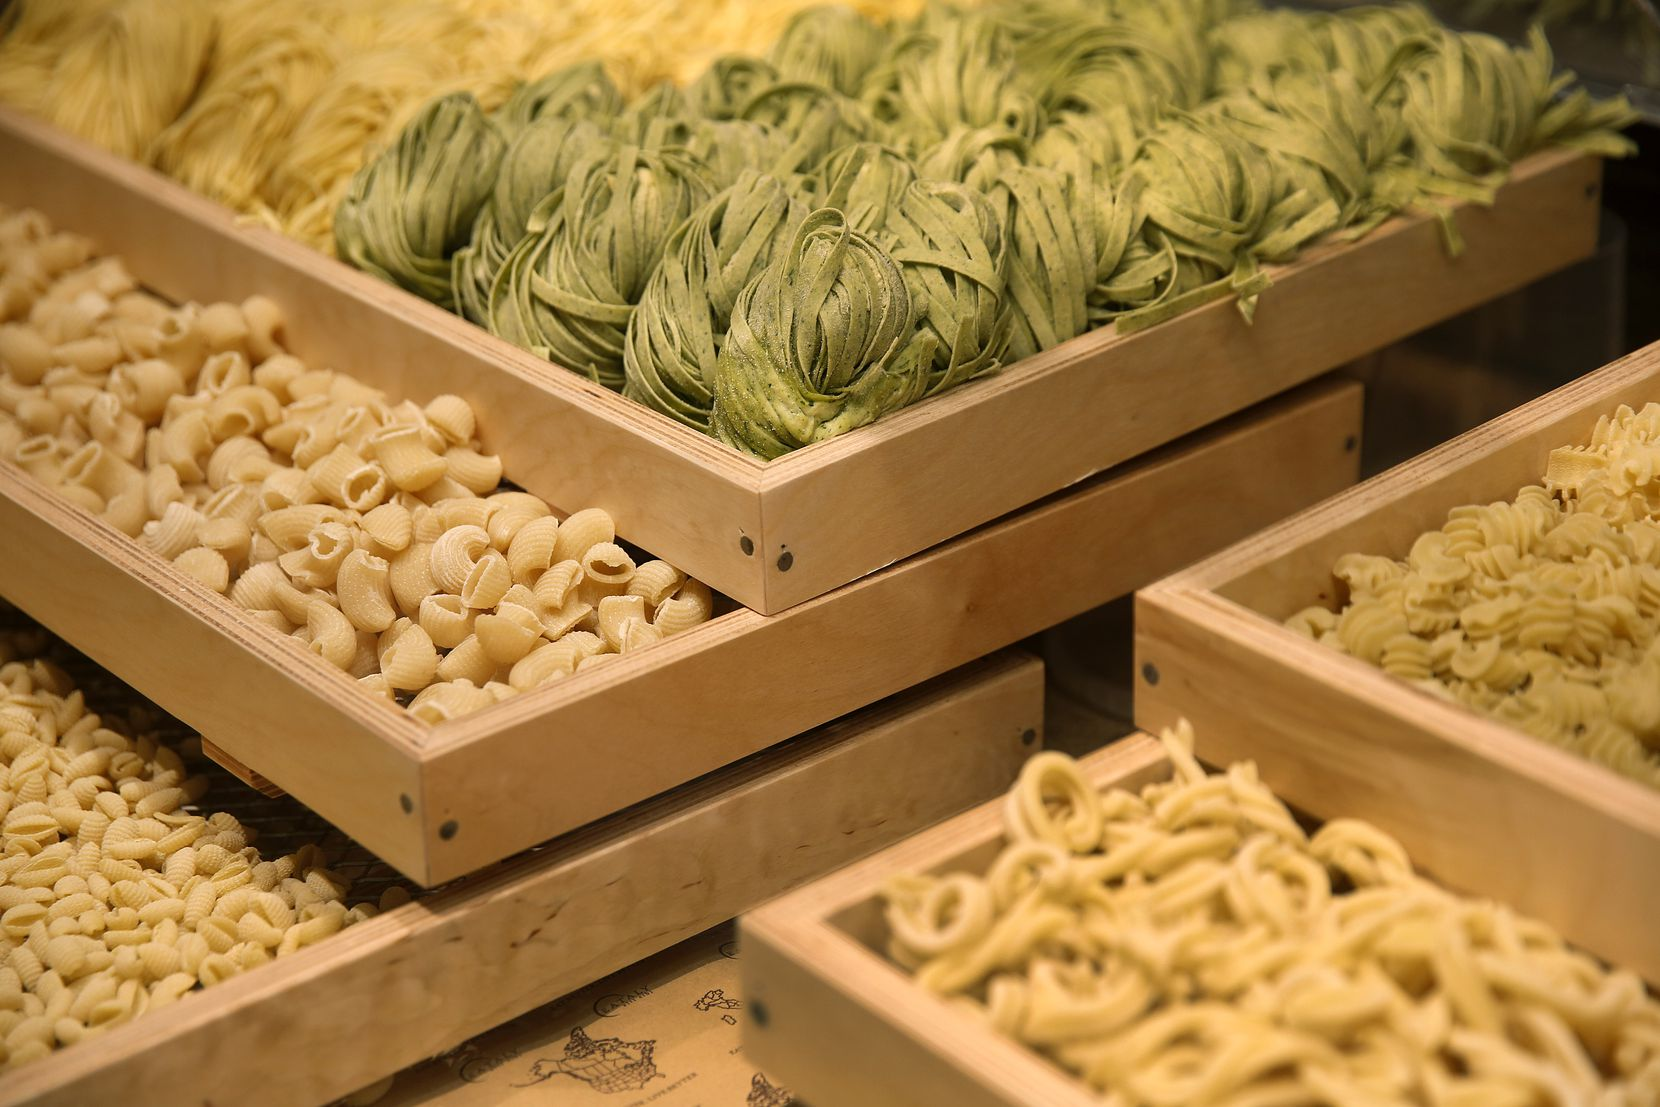 Fresh-made pasta is displayed in the gastronomia cooler inside Texas' first Eataly, opening Dec. 9.